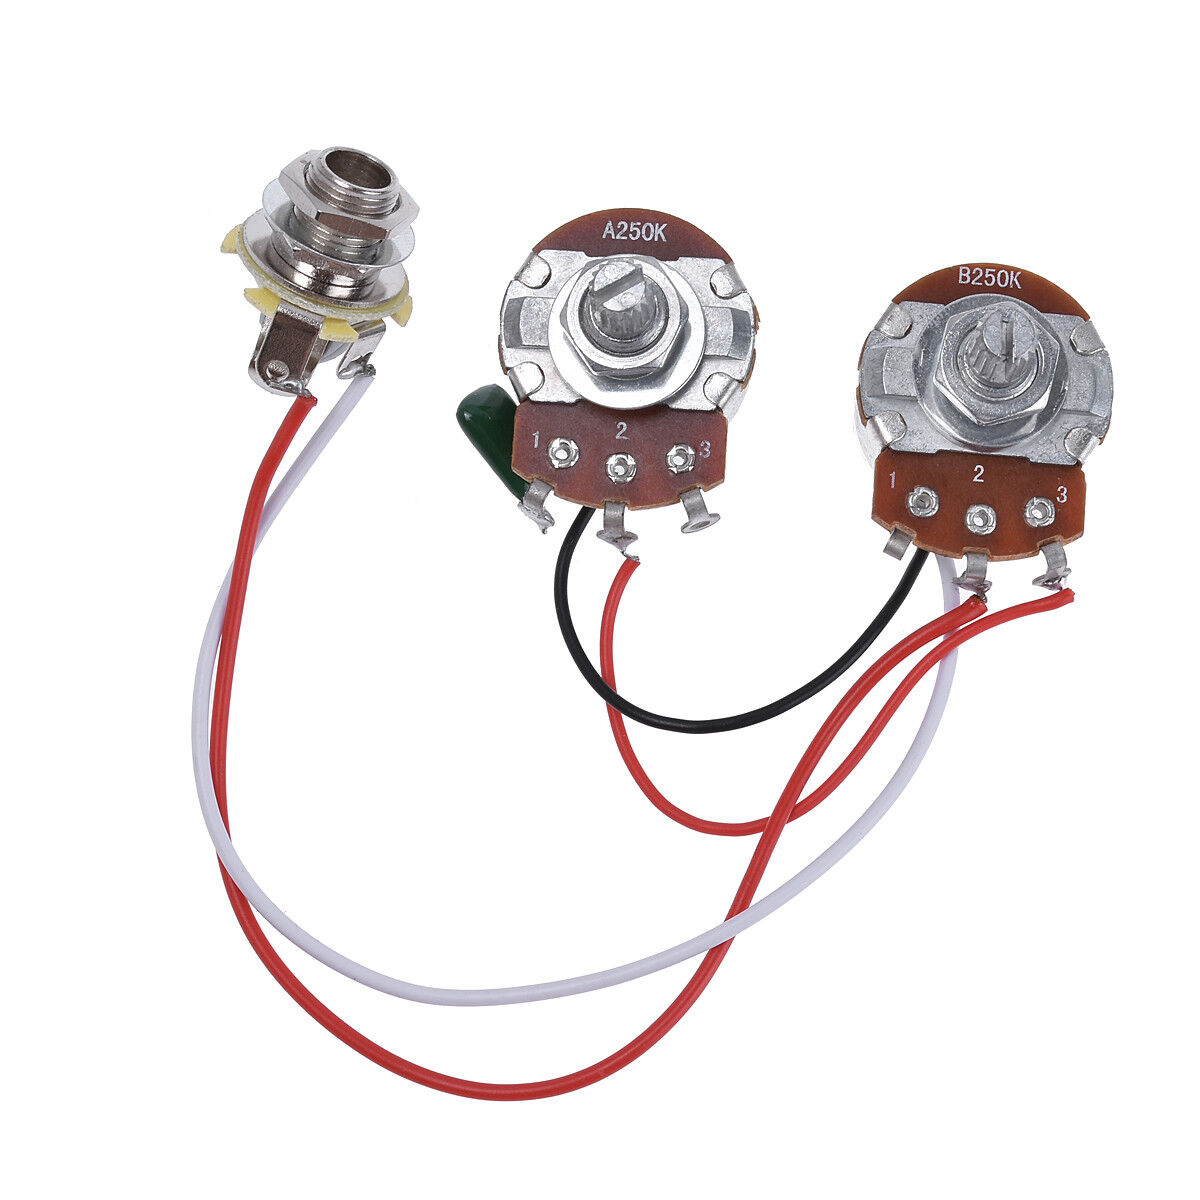 hight resolution of wiring harness prewired kit for precision bass guitar 250k pots 1 v 1 t jack